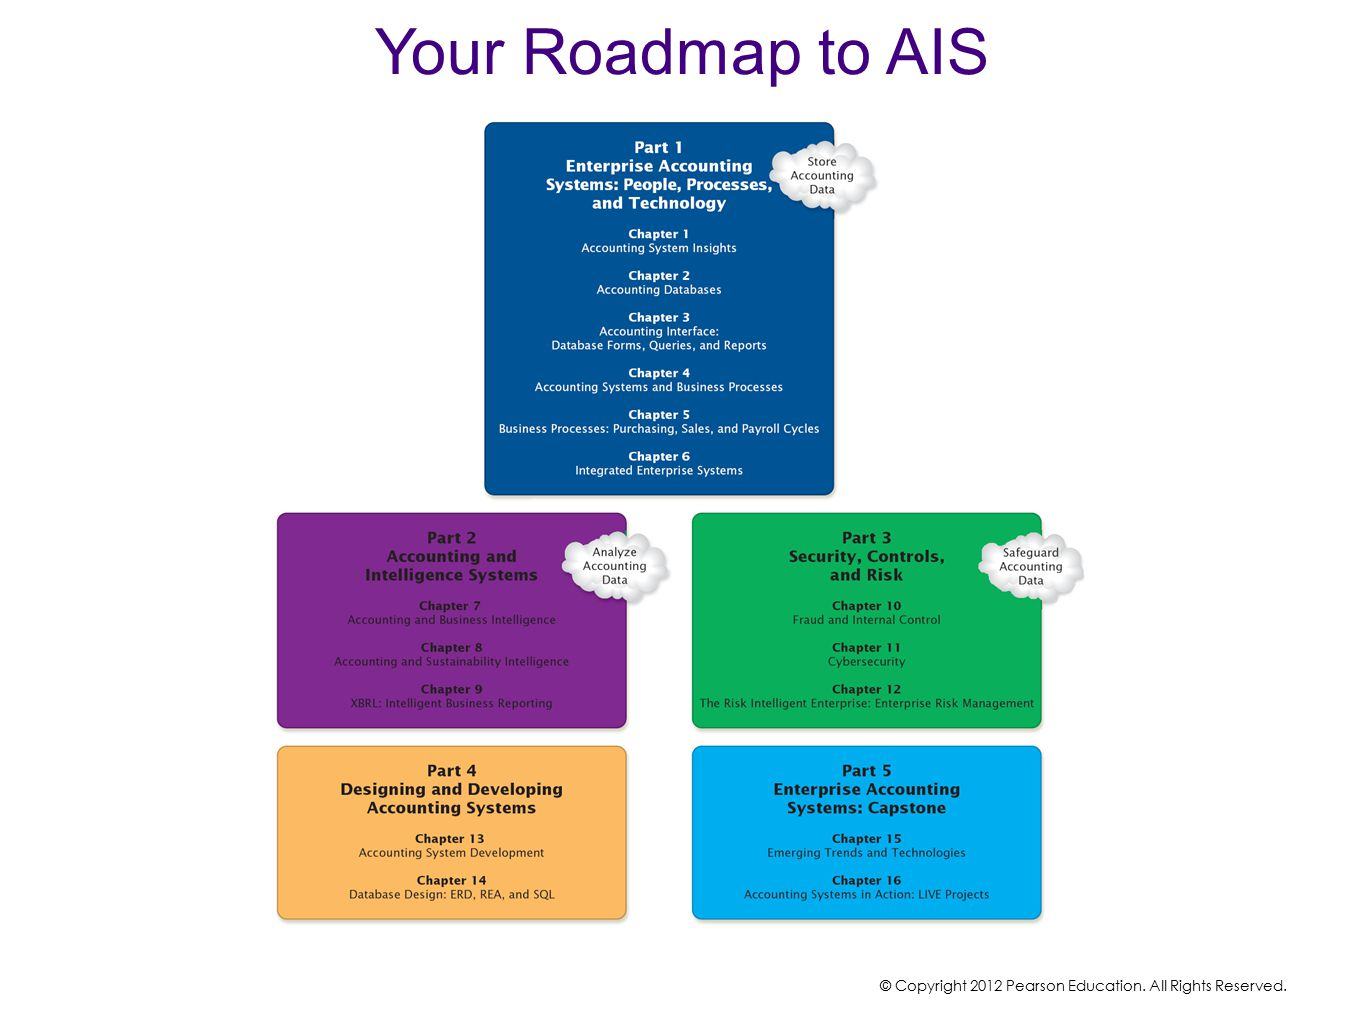 Your Roadmap to AIS © Copyright 2012 Pearson Education. All Rights Reserved.